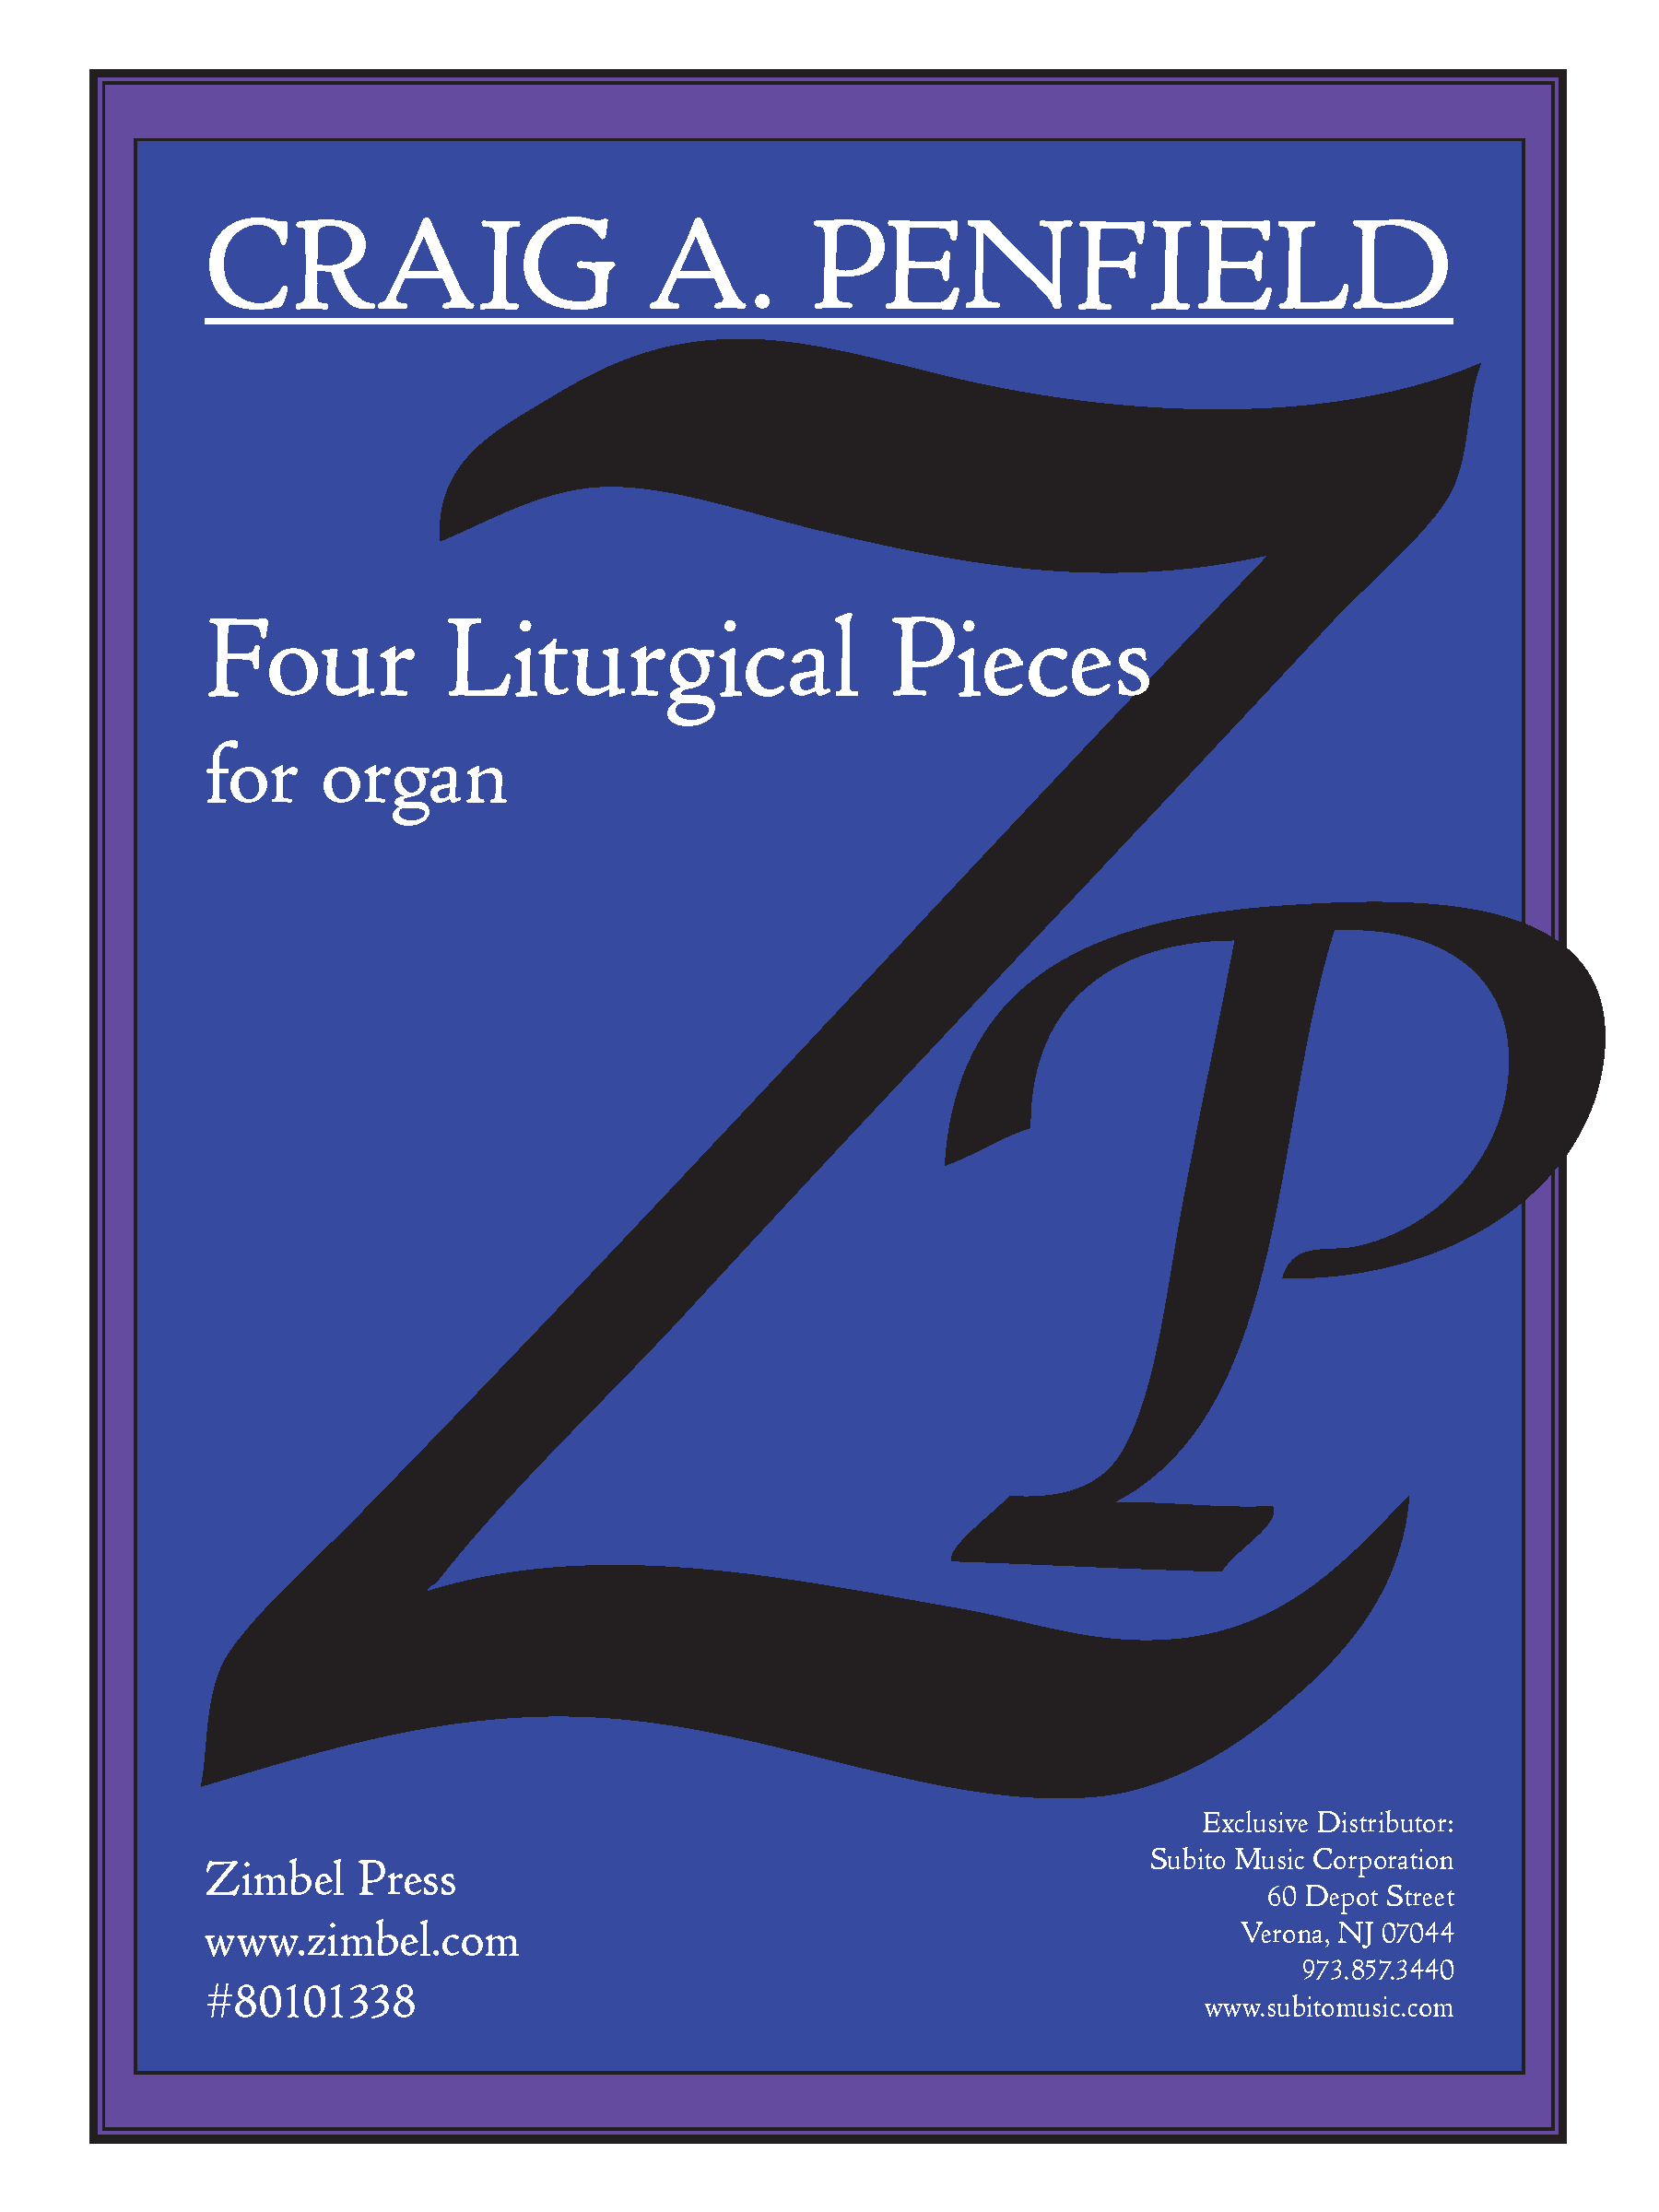 Four Liturgical Pieces for Organ